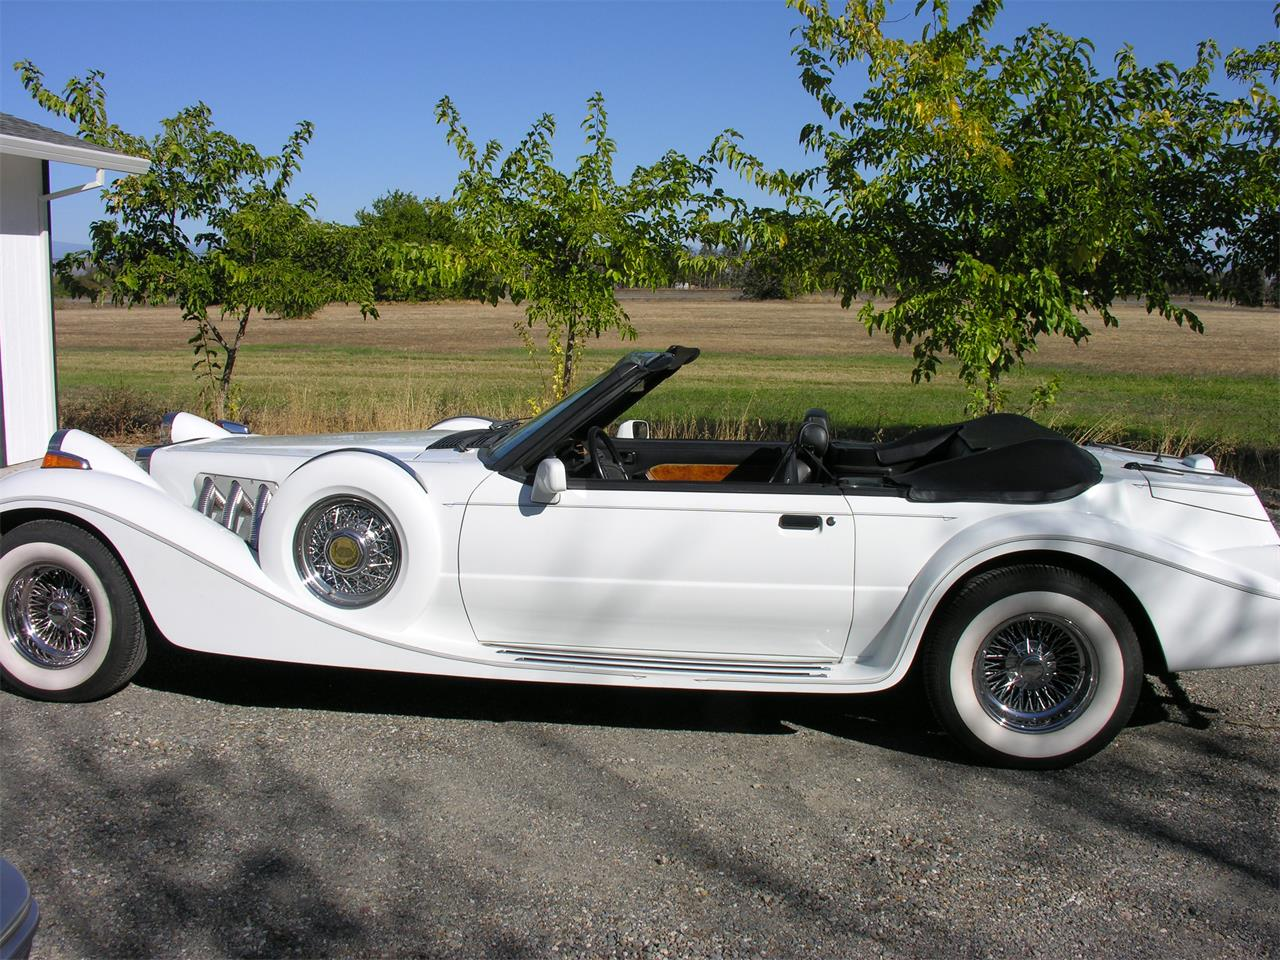 1990 Destiny/Tiffany Convertible for sale in Red Bluff, CA